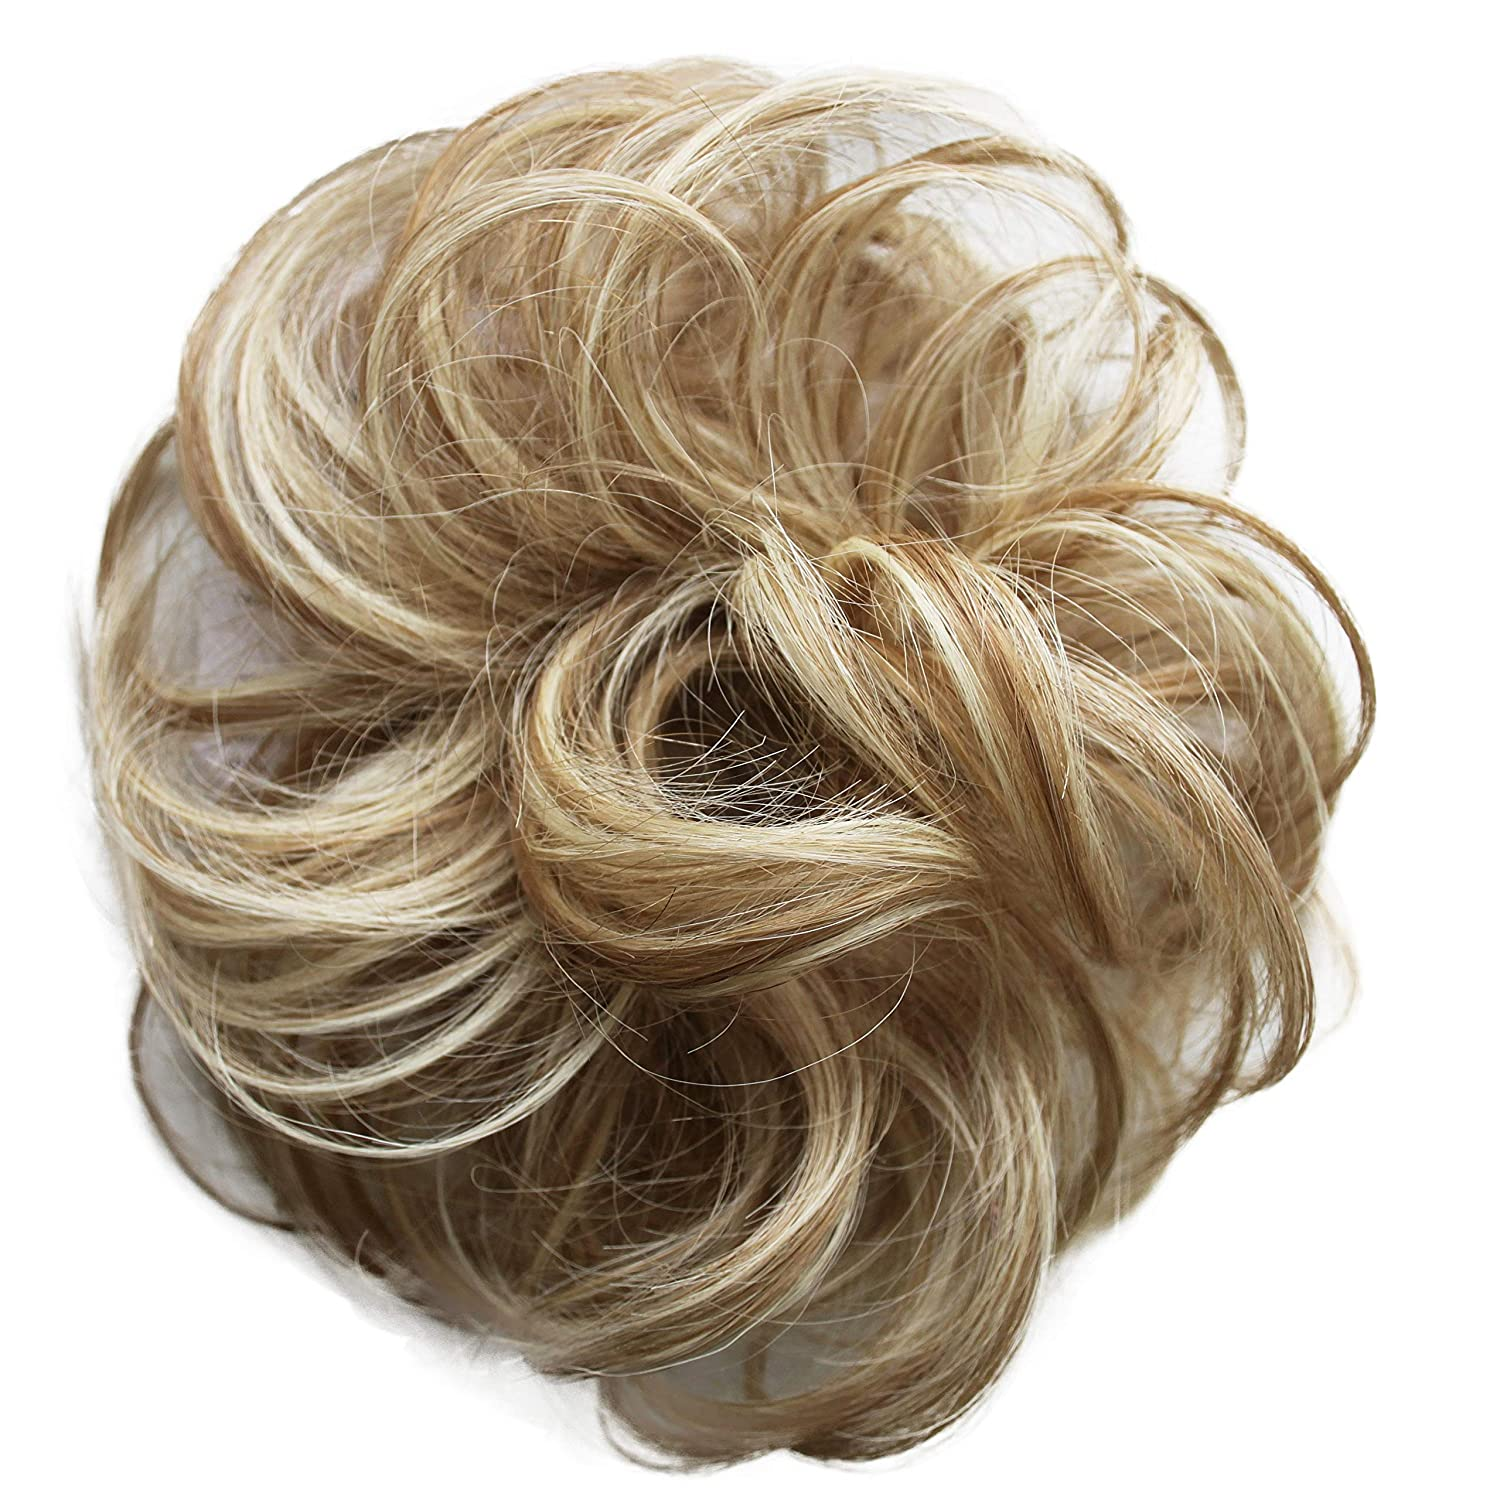 PRETTYSHOP 100% Human Hair Up Scrunchie Scrunchy Extensions Hairpiece Do Bun Ponytail Diverse Colors (blonde mix #27H613) H312